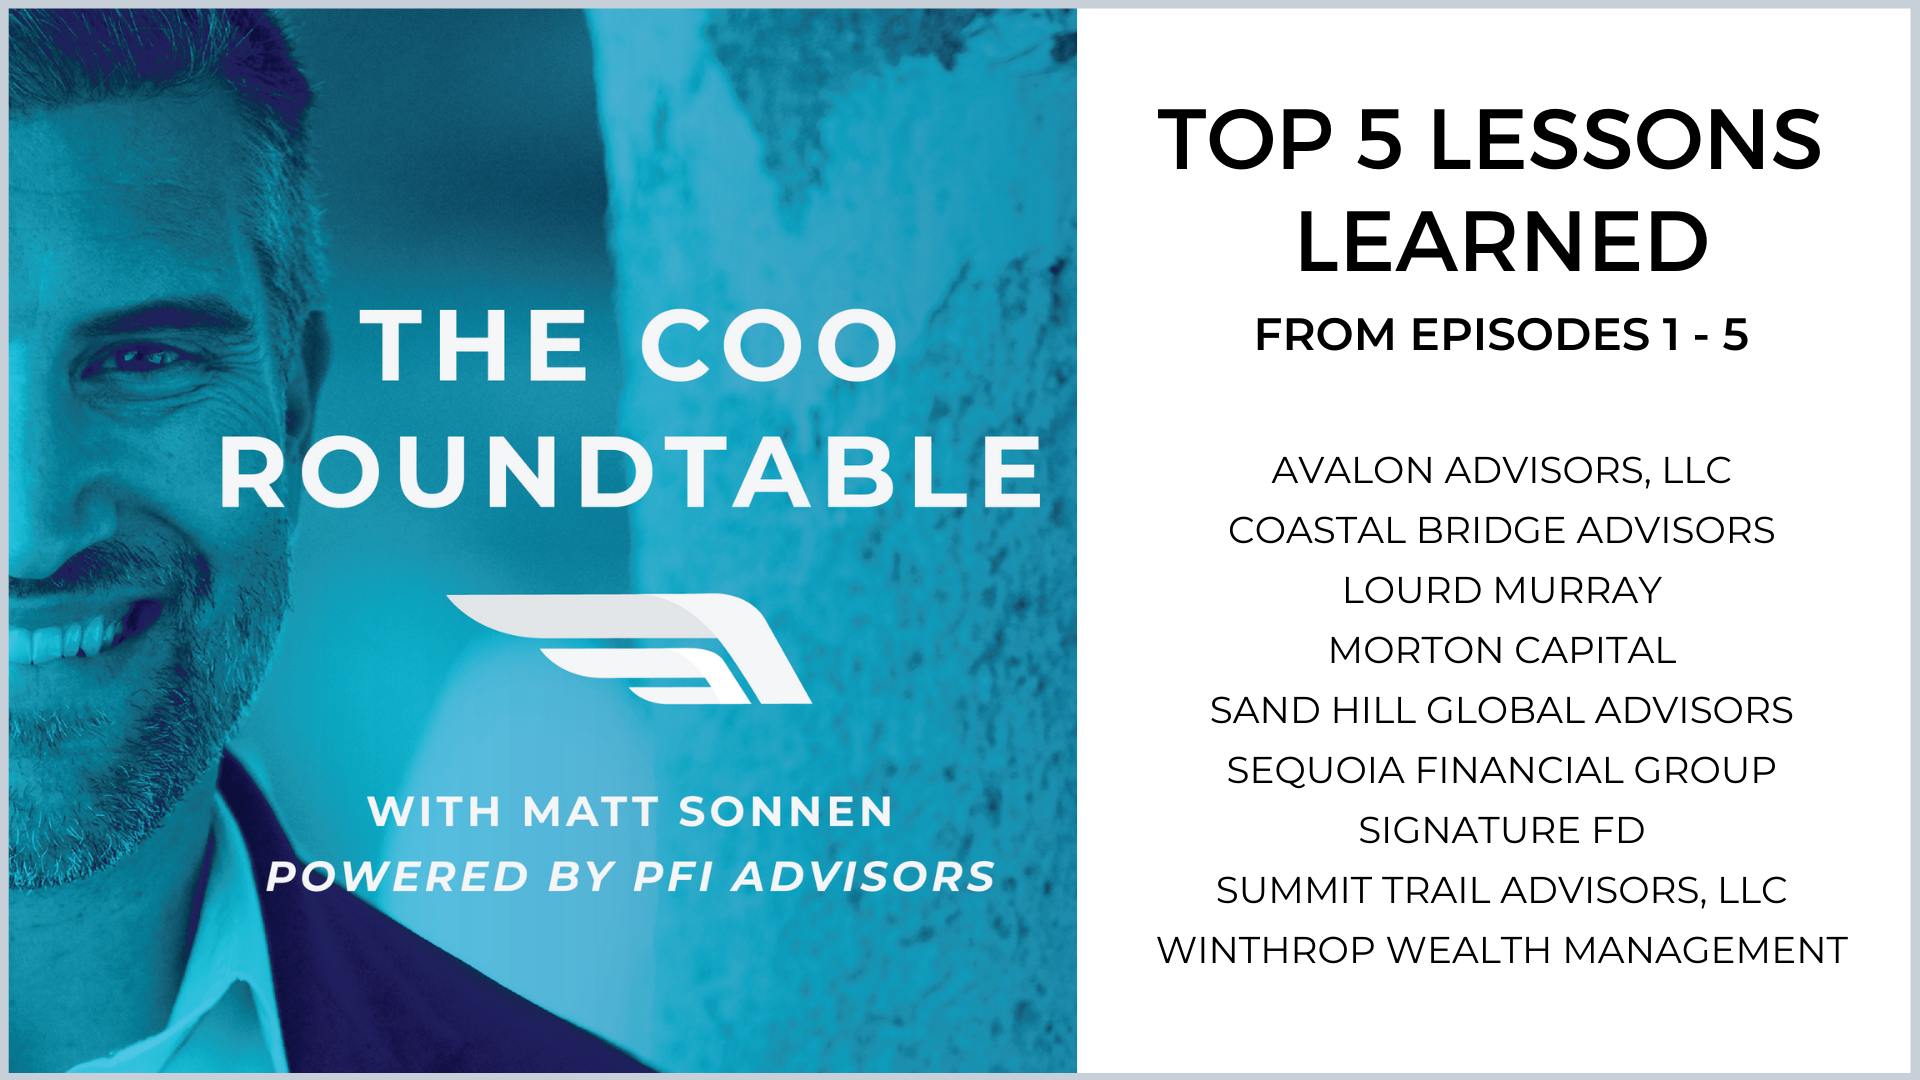 Top 5 Lessons Learned from Episodes 1-5 of The COO Roundtable